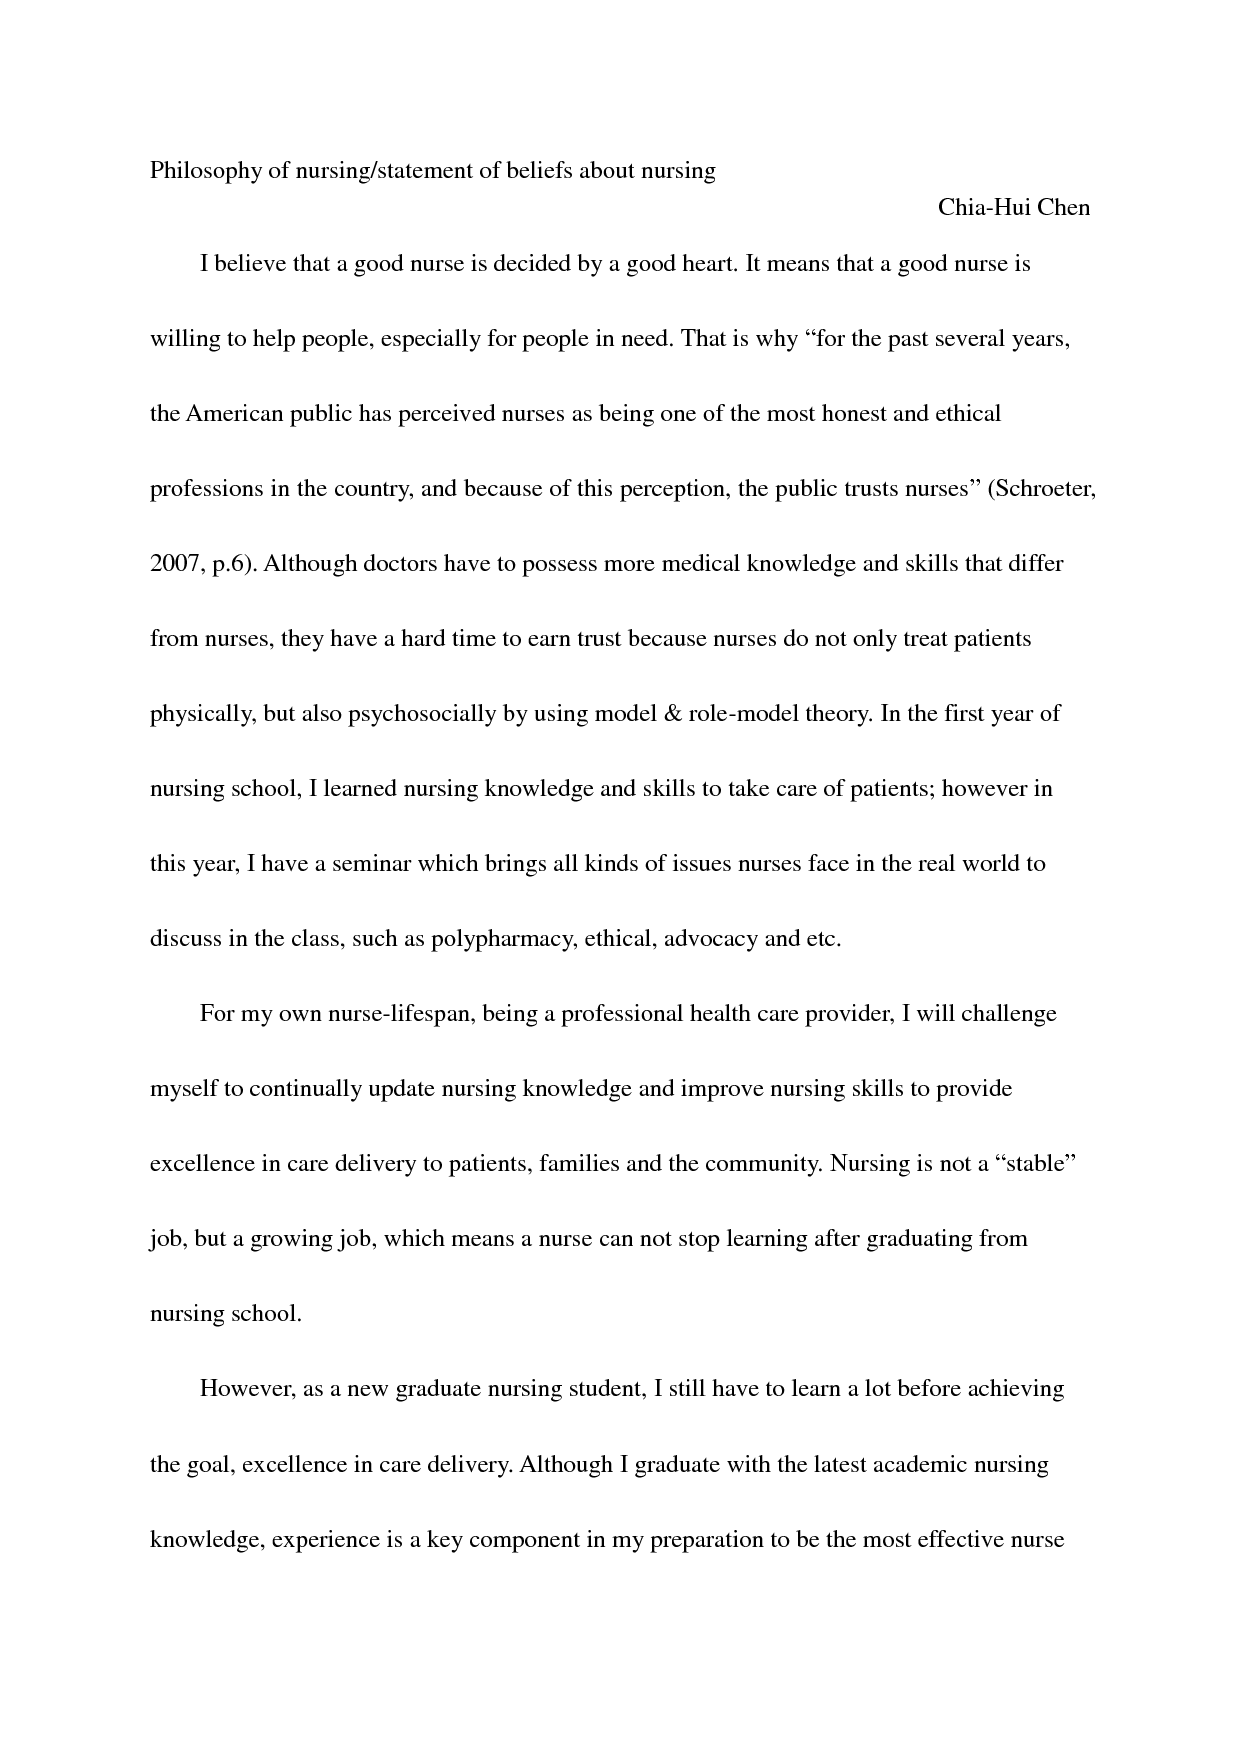 apa research paper purpose apa style citation citation is a good thesis for a nursing paper are you trying to learn how to write or teach persuasive essays this page will provide you all you need about writing